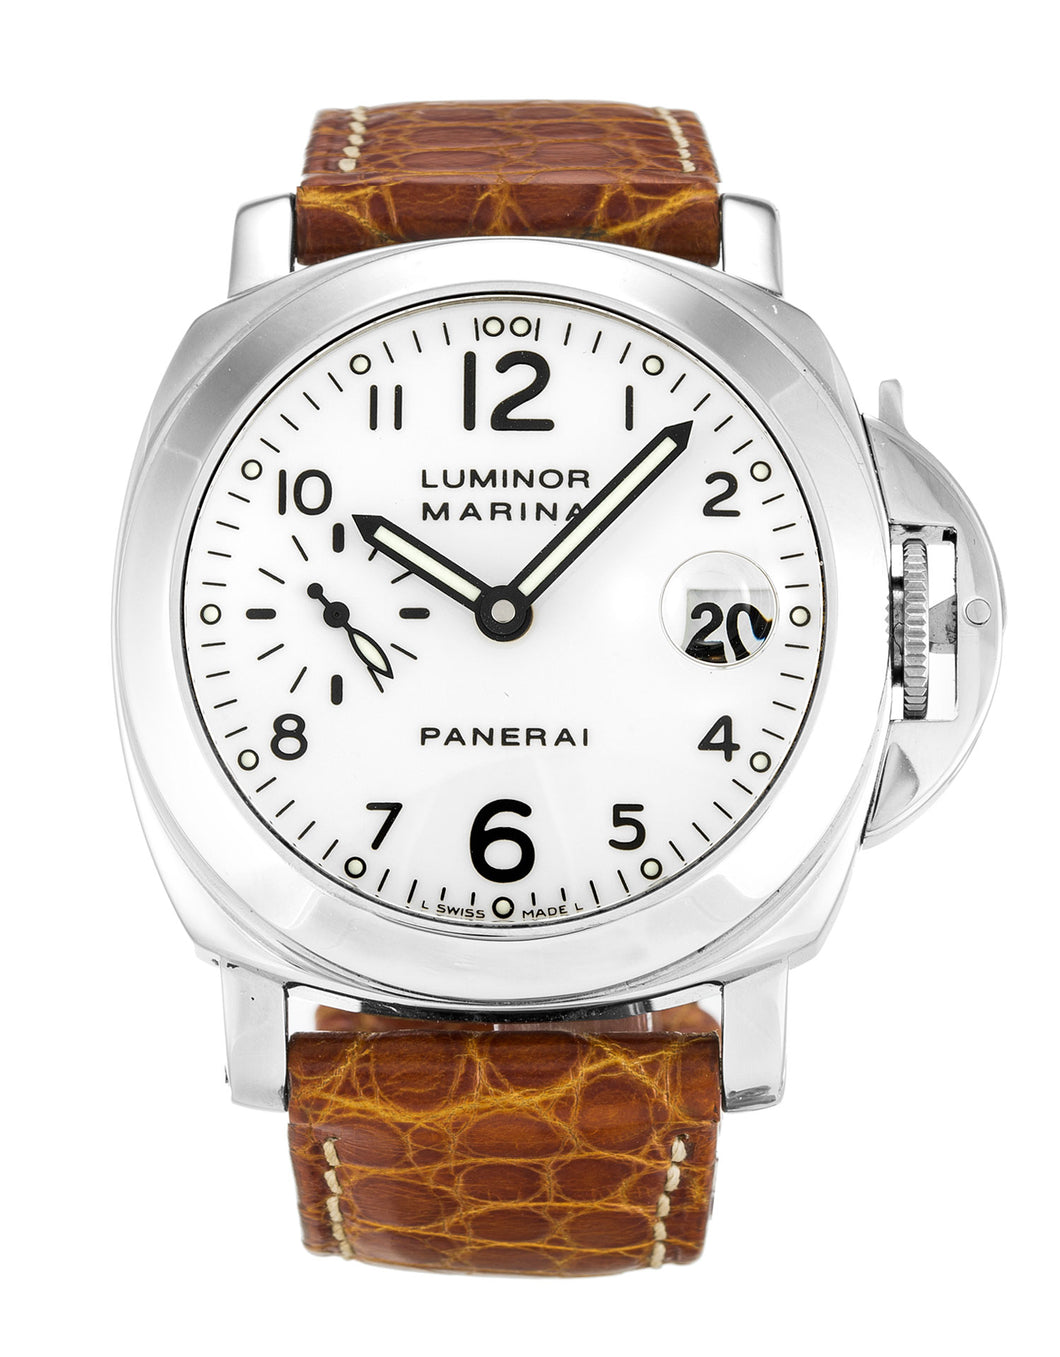 PANERAI LUMINOR MARINA PAM00049 WHITE ARABIC DIAL AUTOMATIC